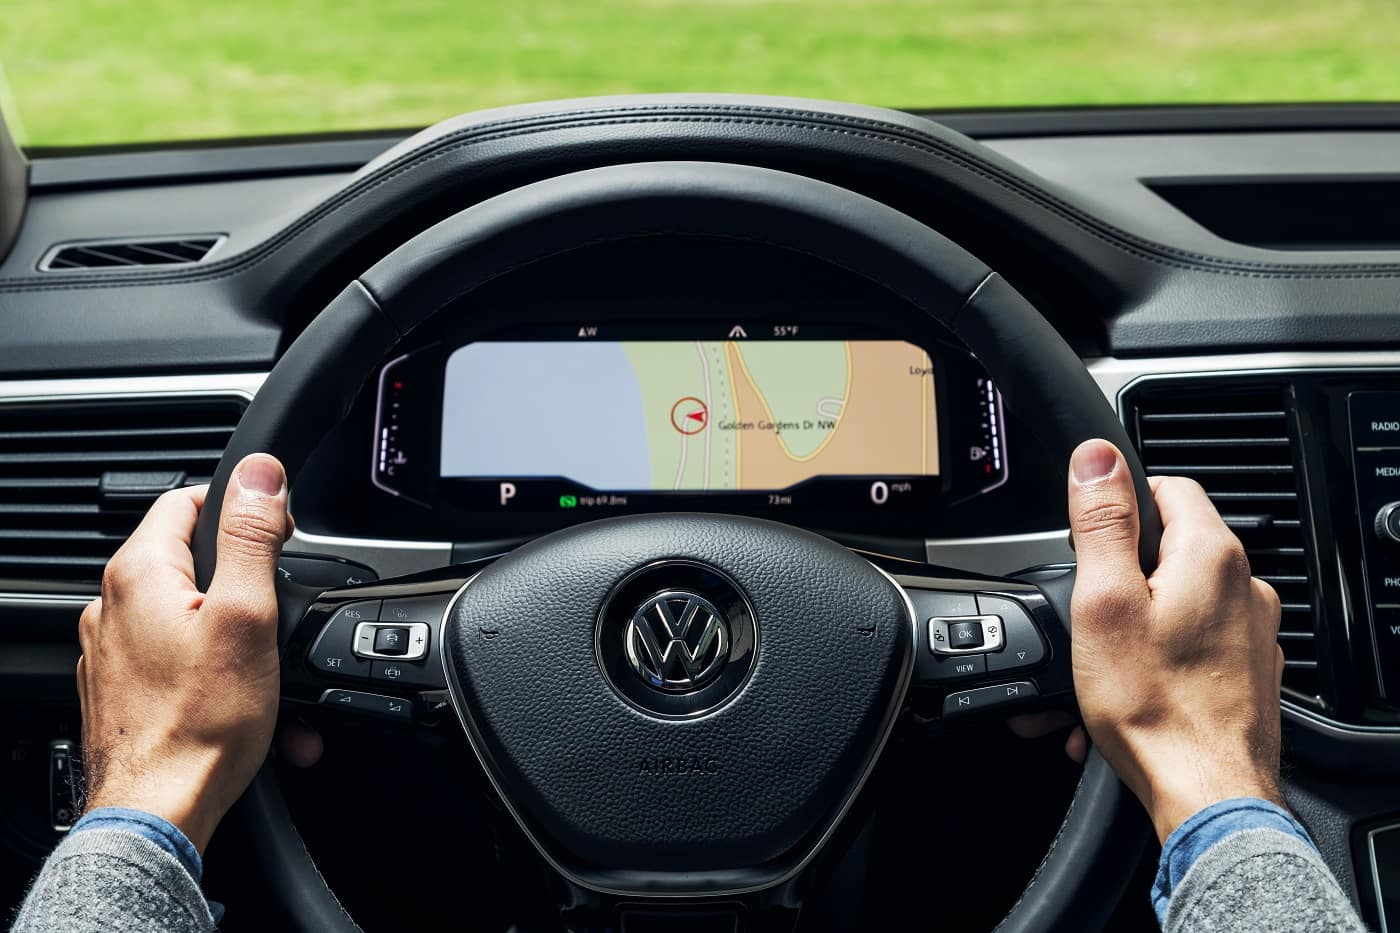 VW Tiguan Safety Features